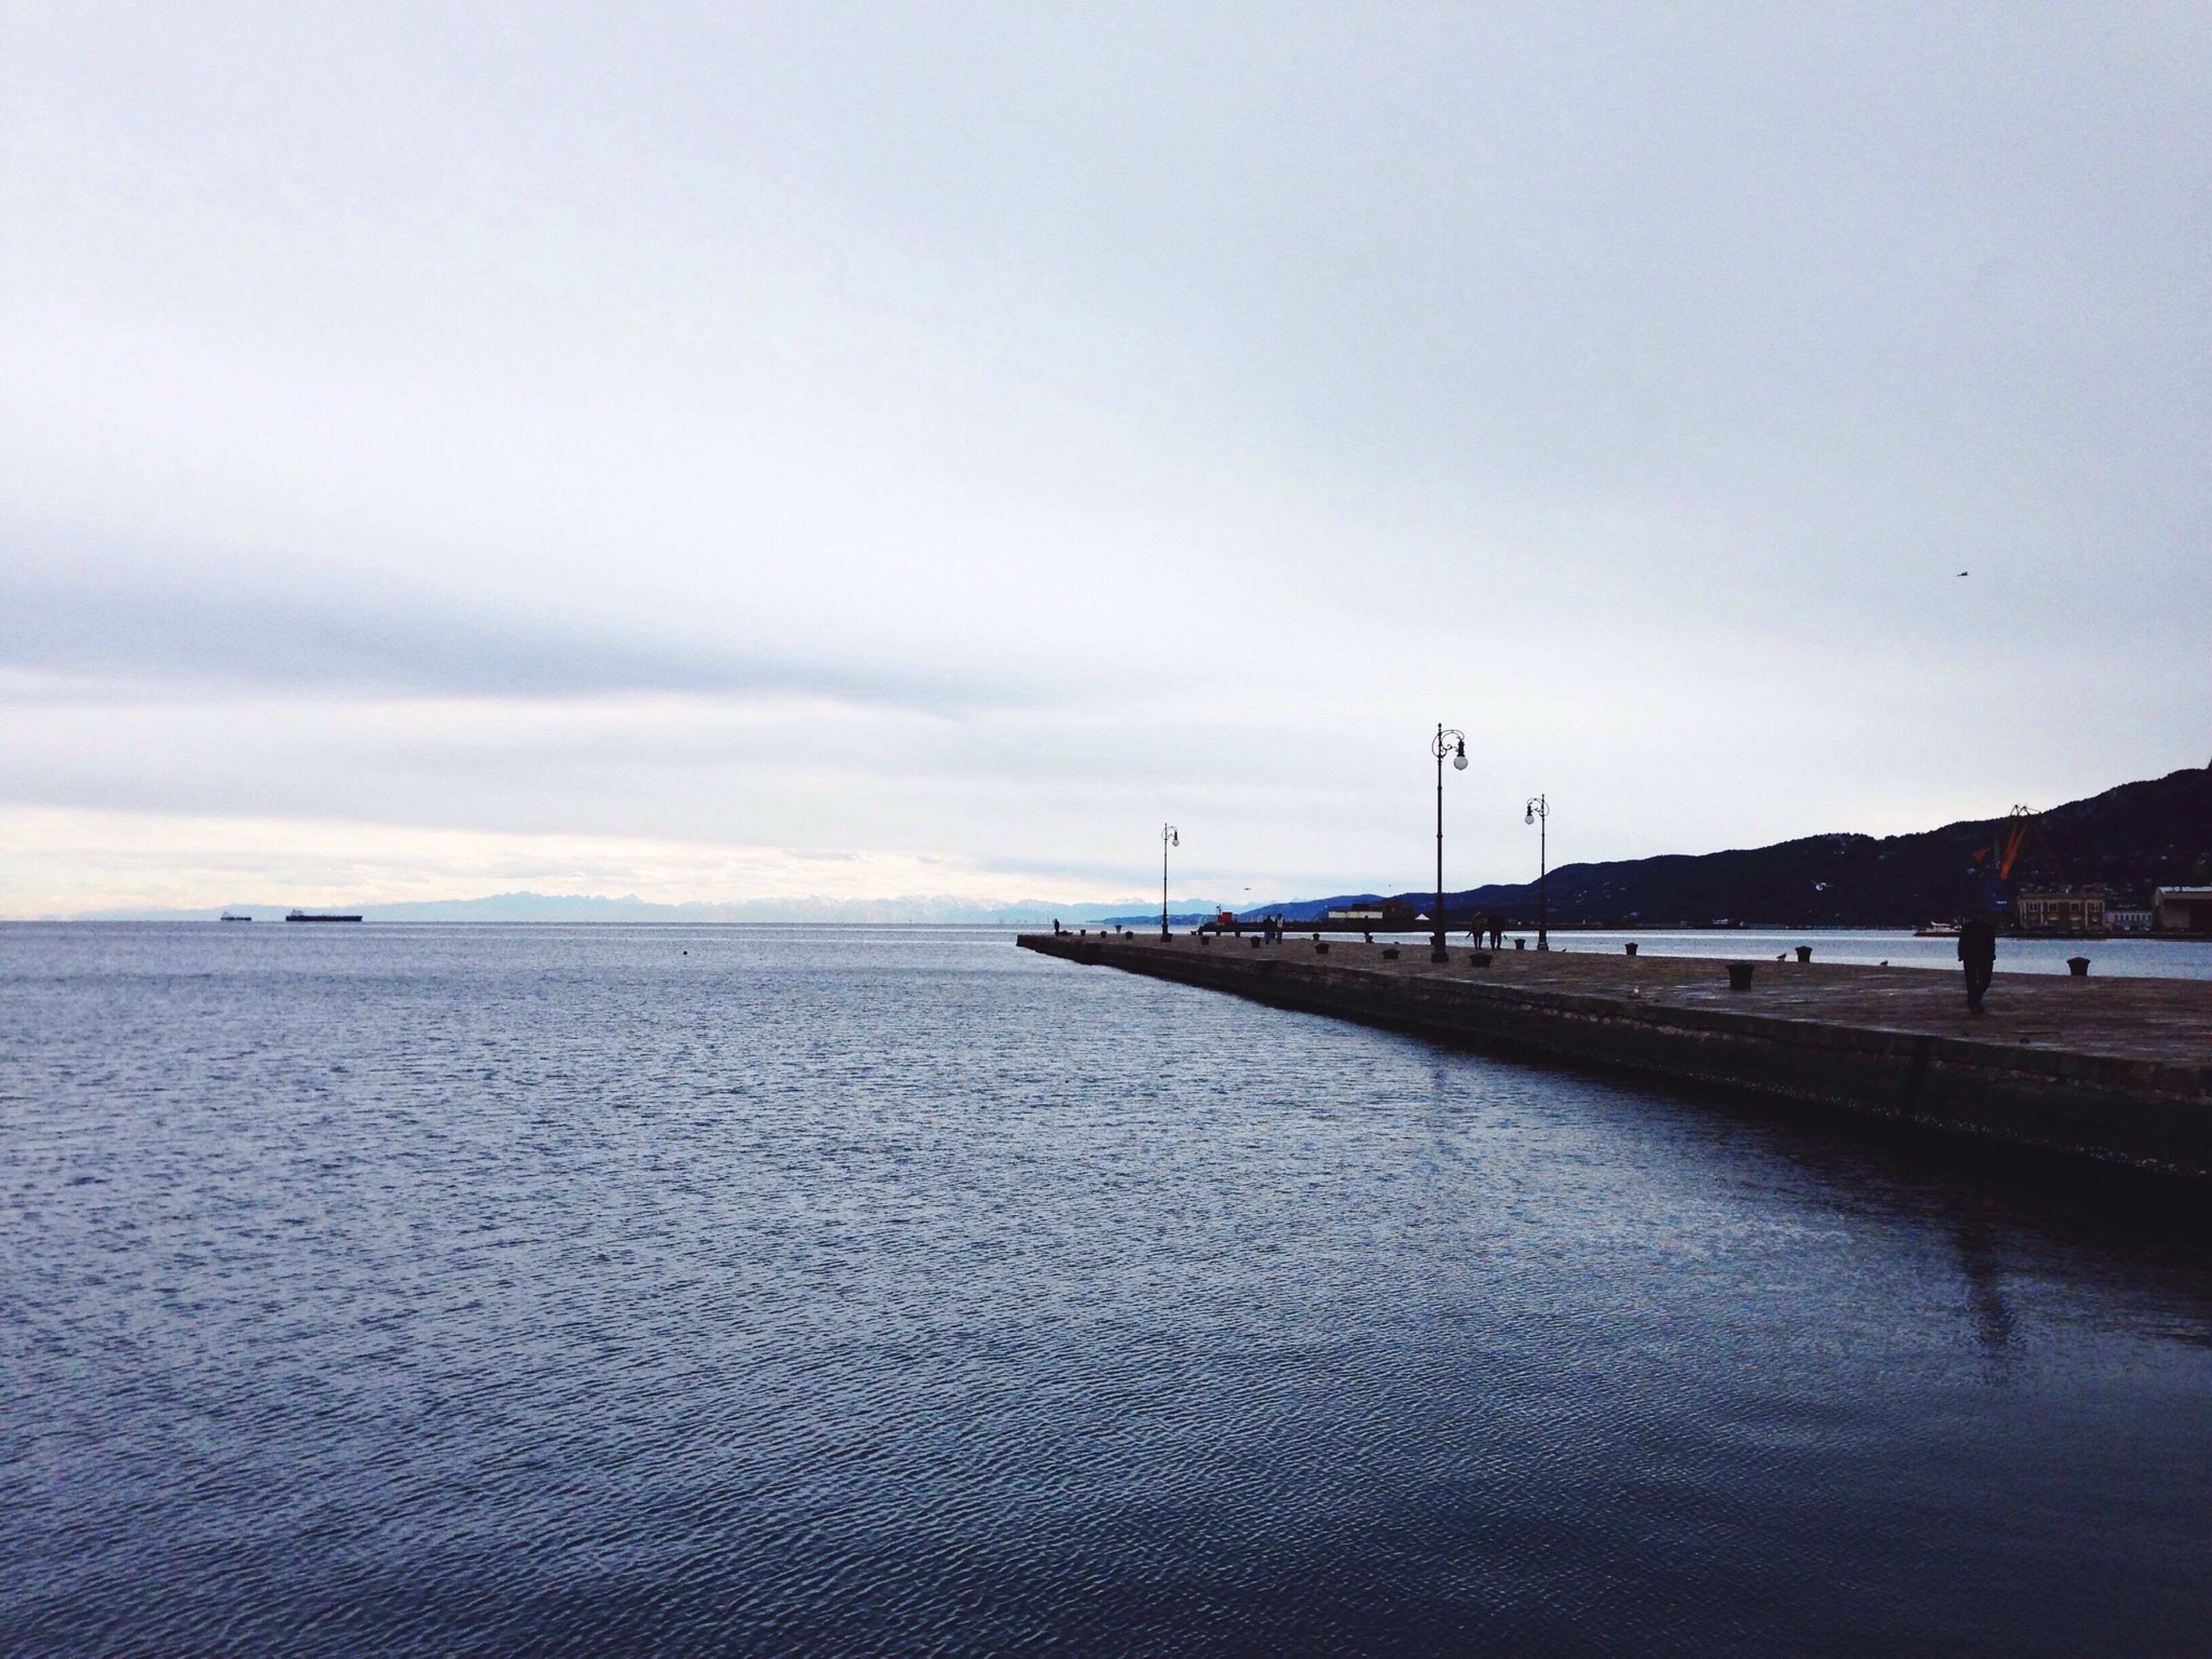 water, sky, sea, tranquil scene, tranquility, scenics, cloud - sky, nature, waterfront, beauty in nature, transportation, cloudy, pier, overcast, horizon over water, cloud, outdoors, copy space, idyllic, calm